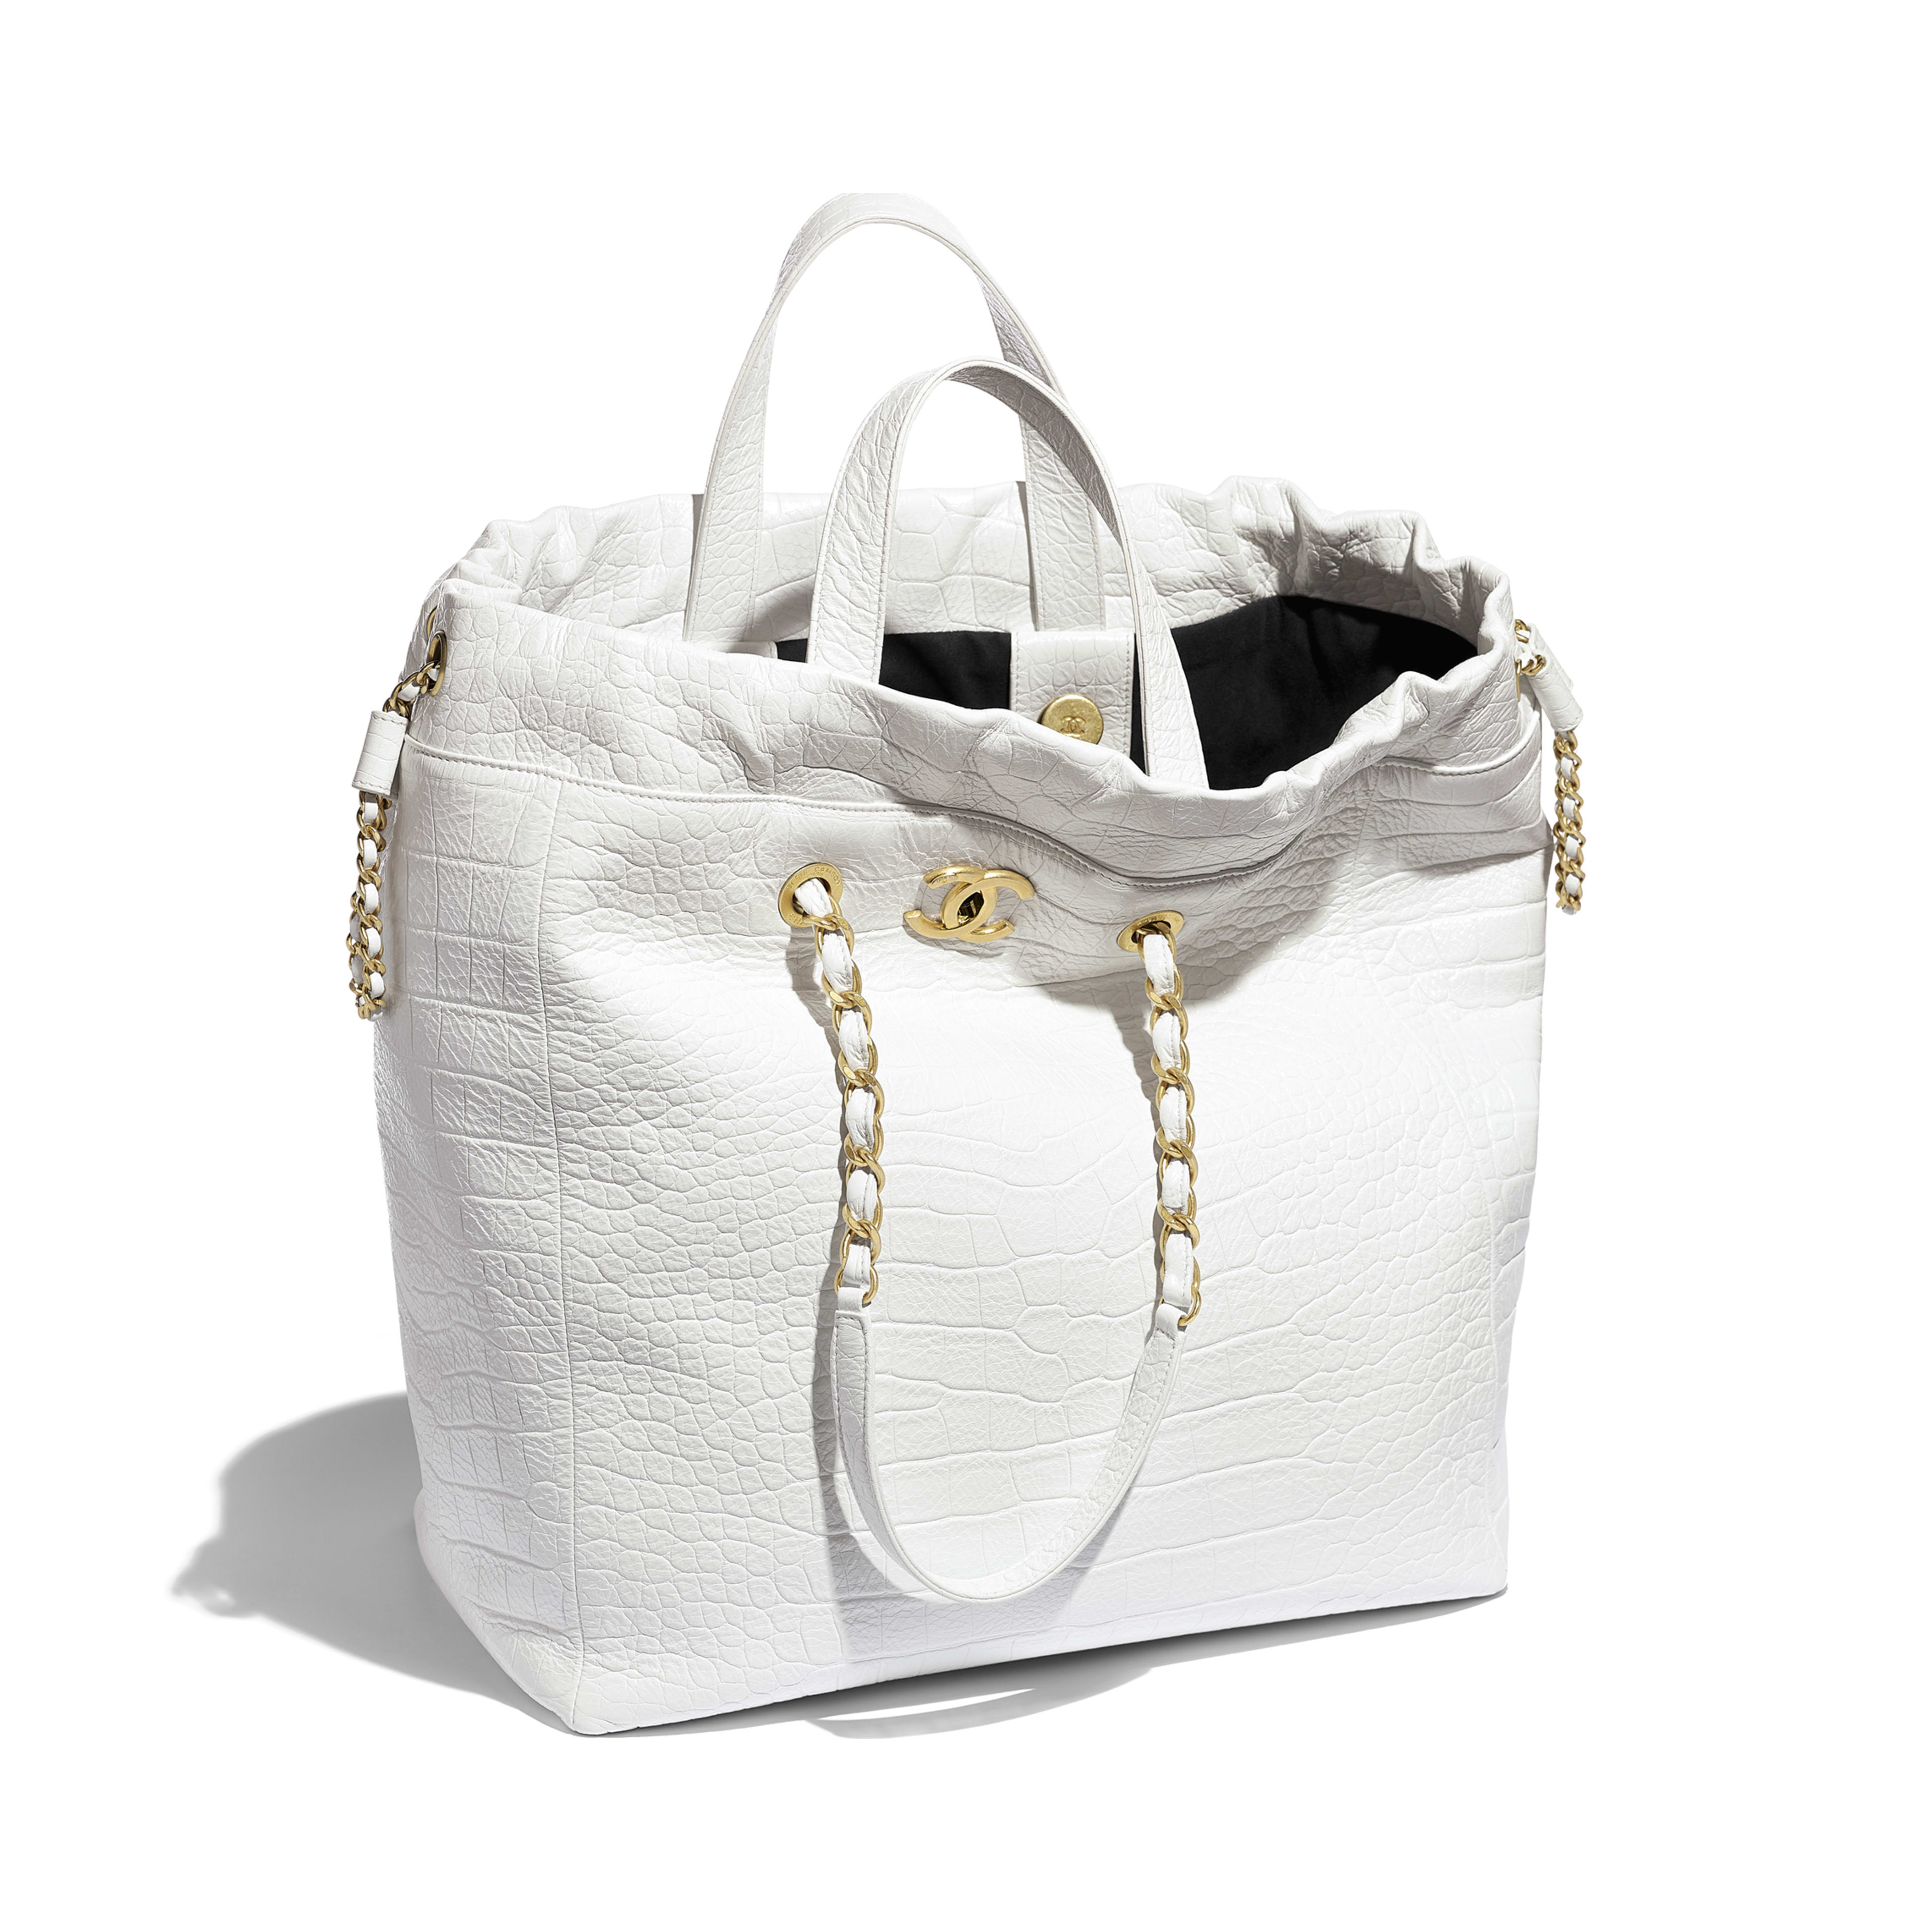 Large Shopping Bag - White - Crocodile Embossed Printed Leather & Gold-Tone Metal - Other view - see full sized version